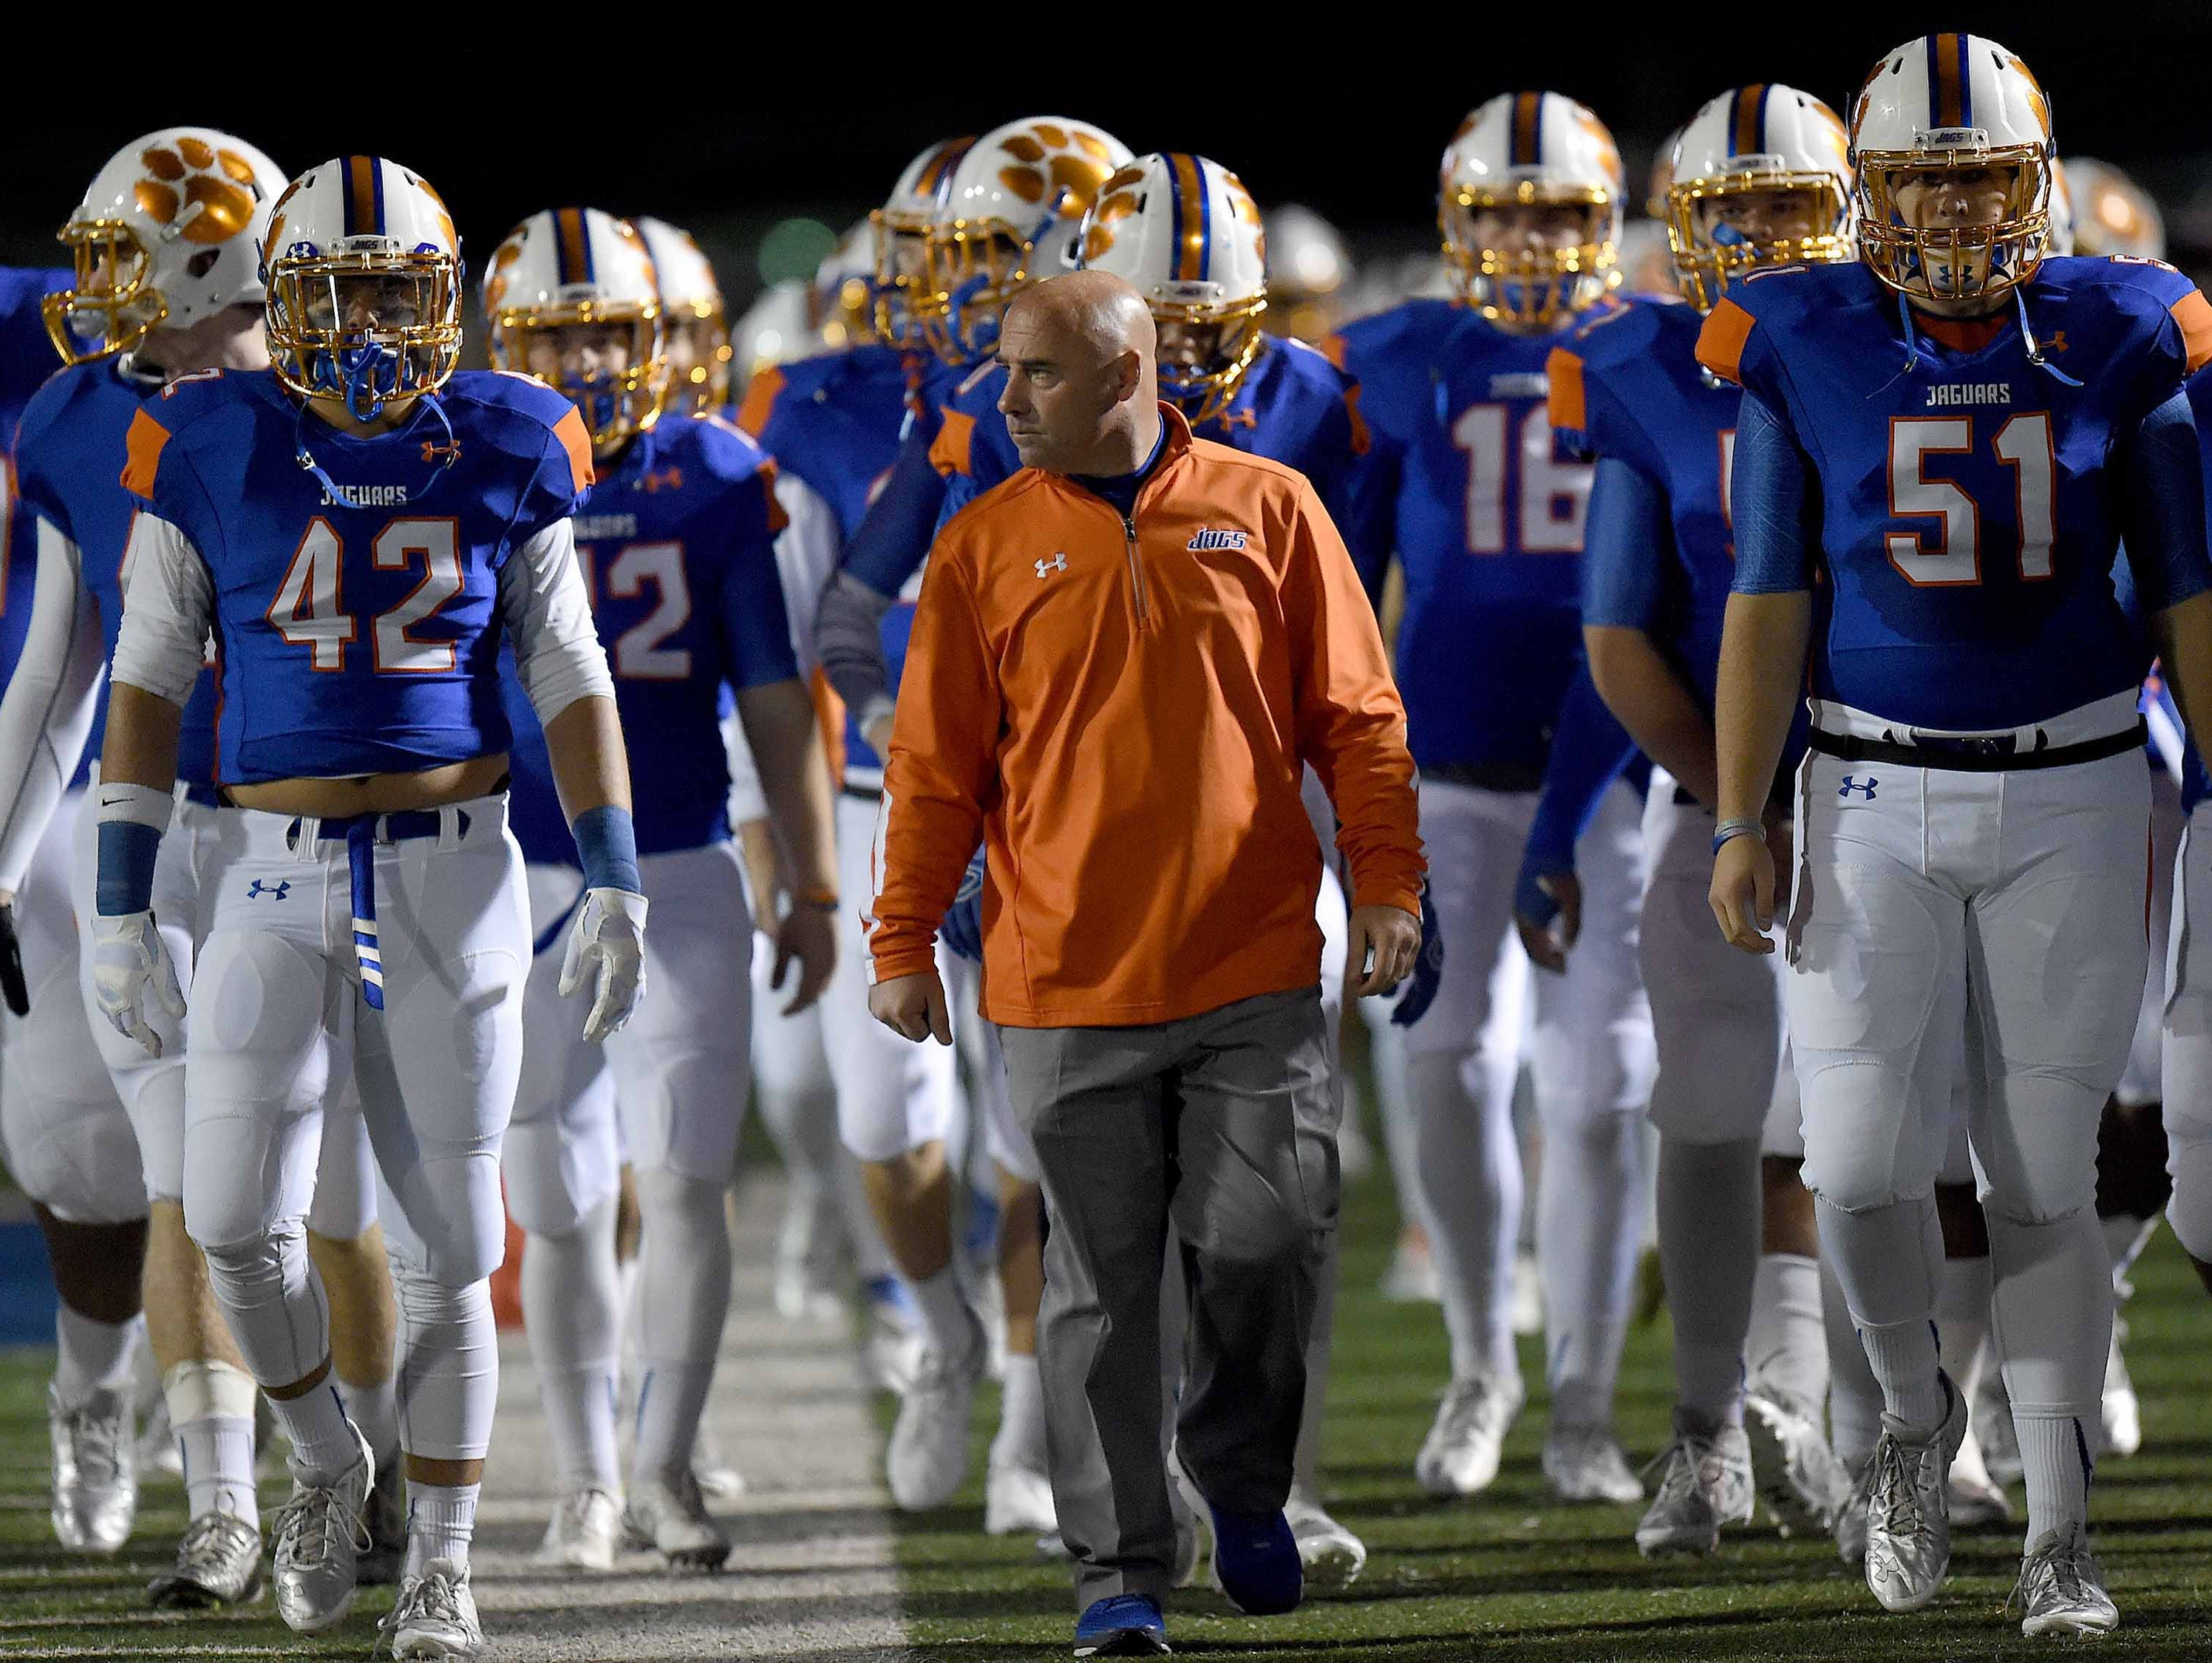 On what they're calling their 'revenge tour', Brad Peterson and Madison Central look to take down Starkville in the 6A North State finals.